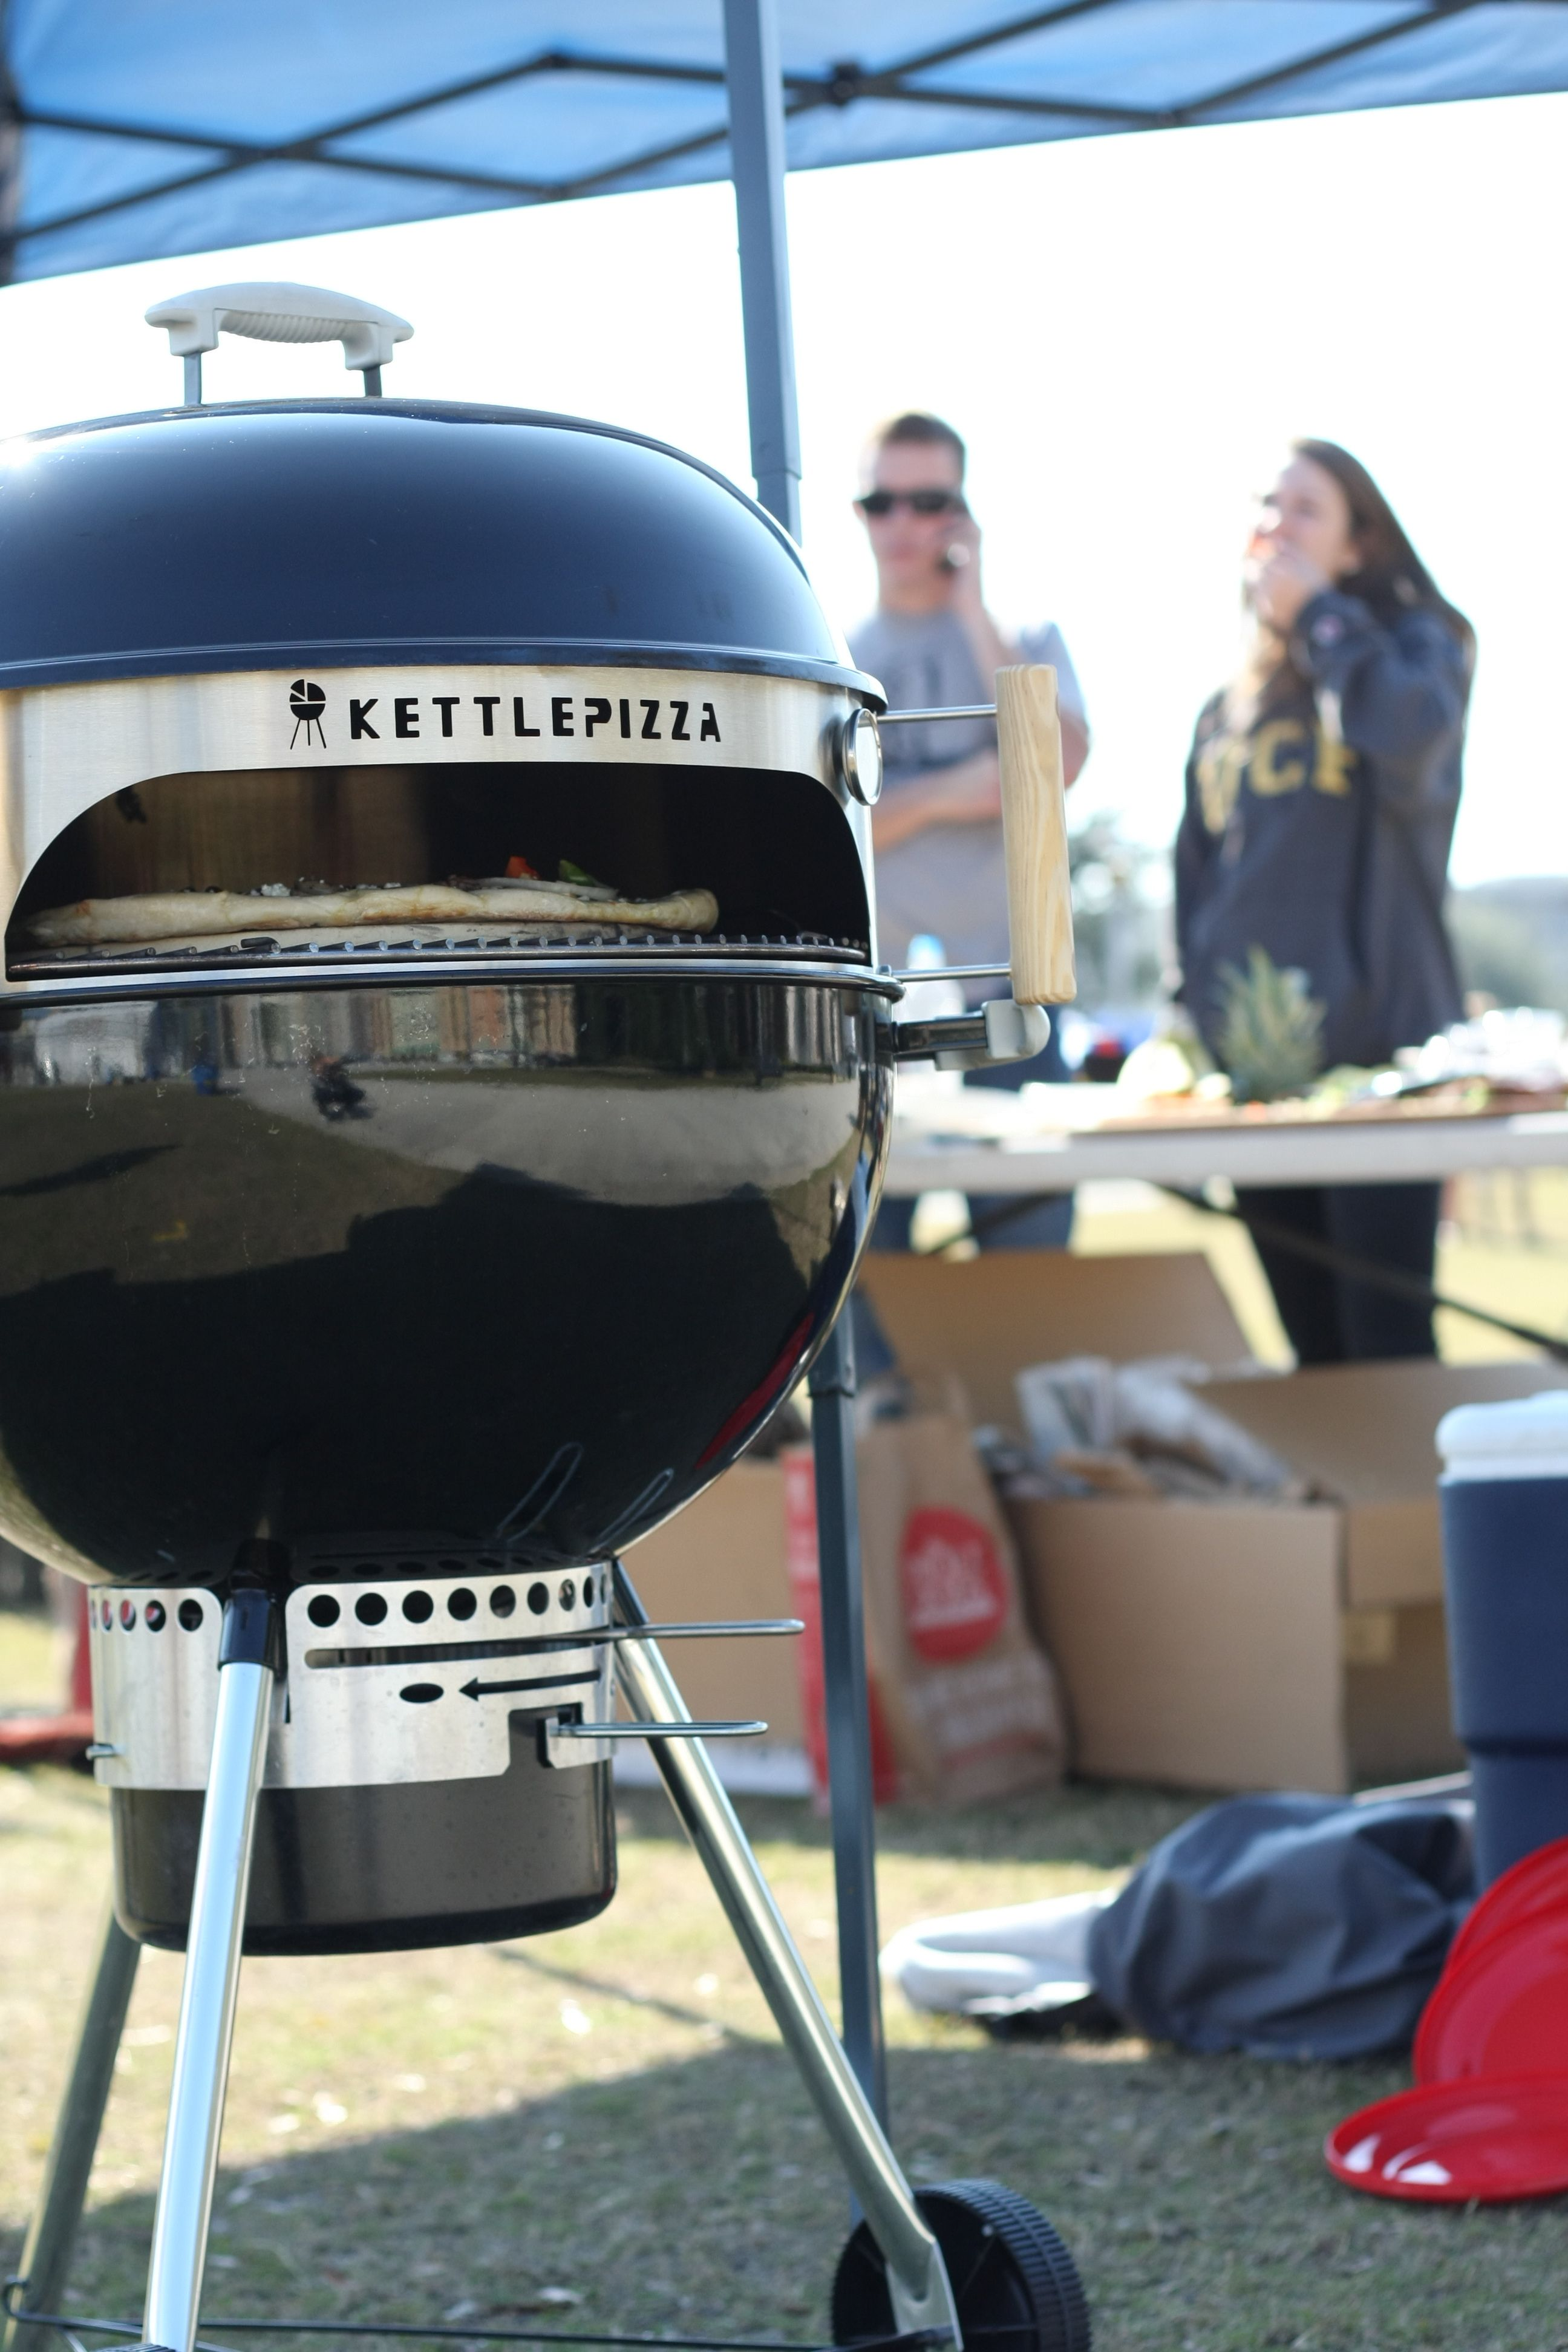 Enter This Contest To Win A Kettlepizza Basic Pizza Oven